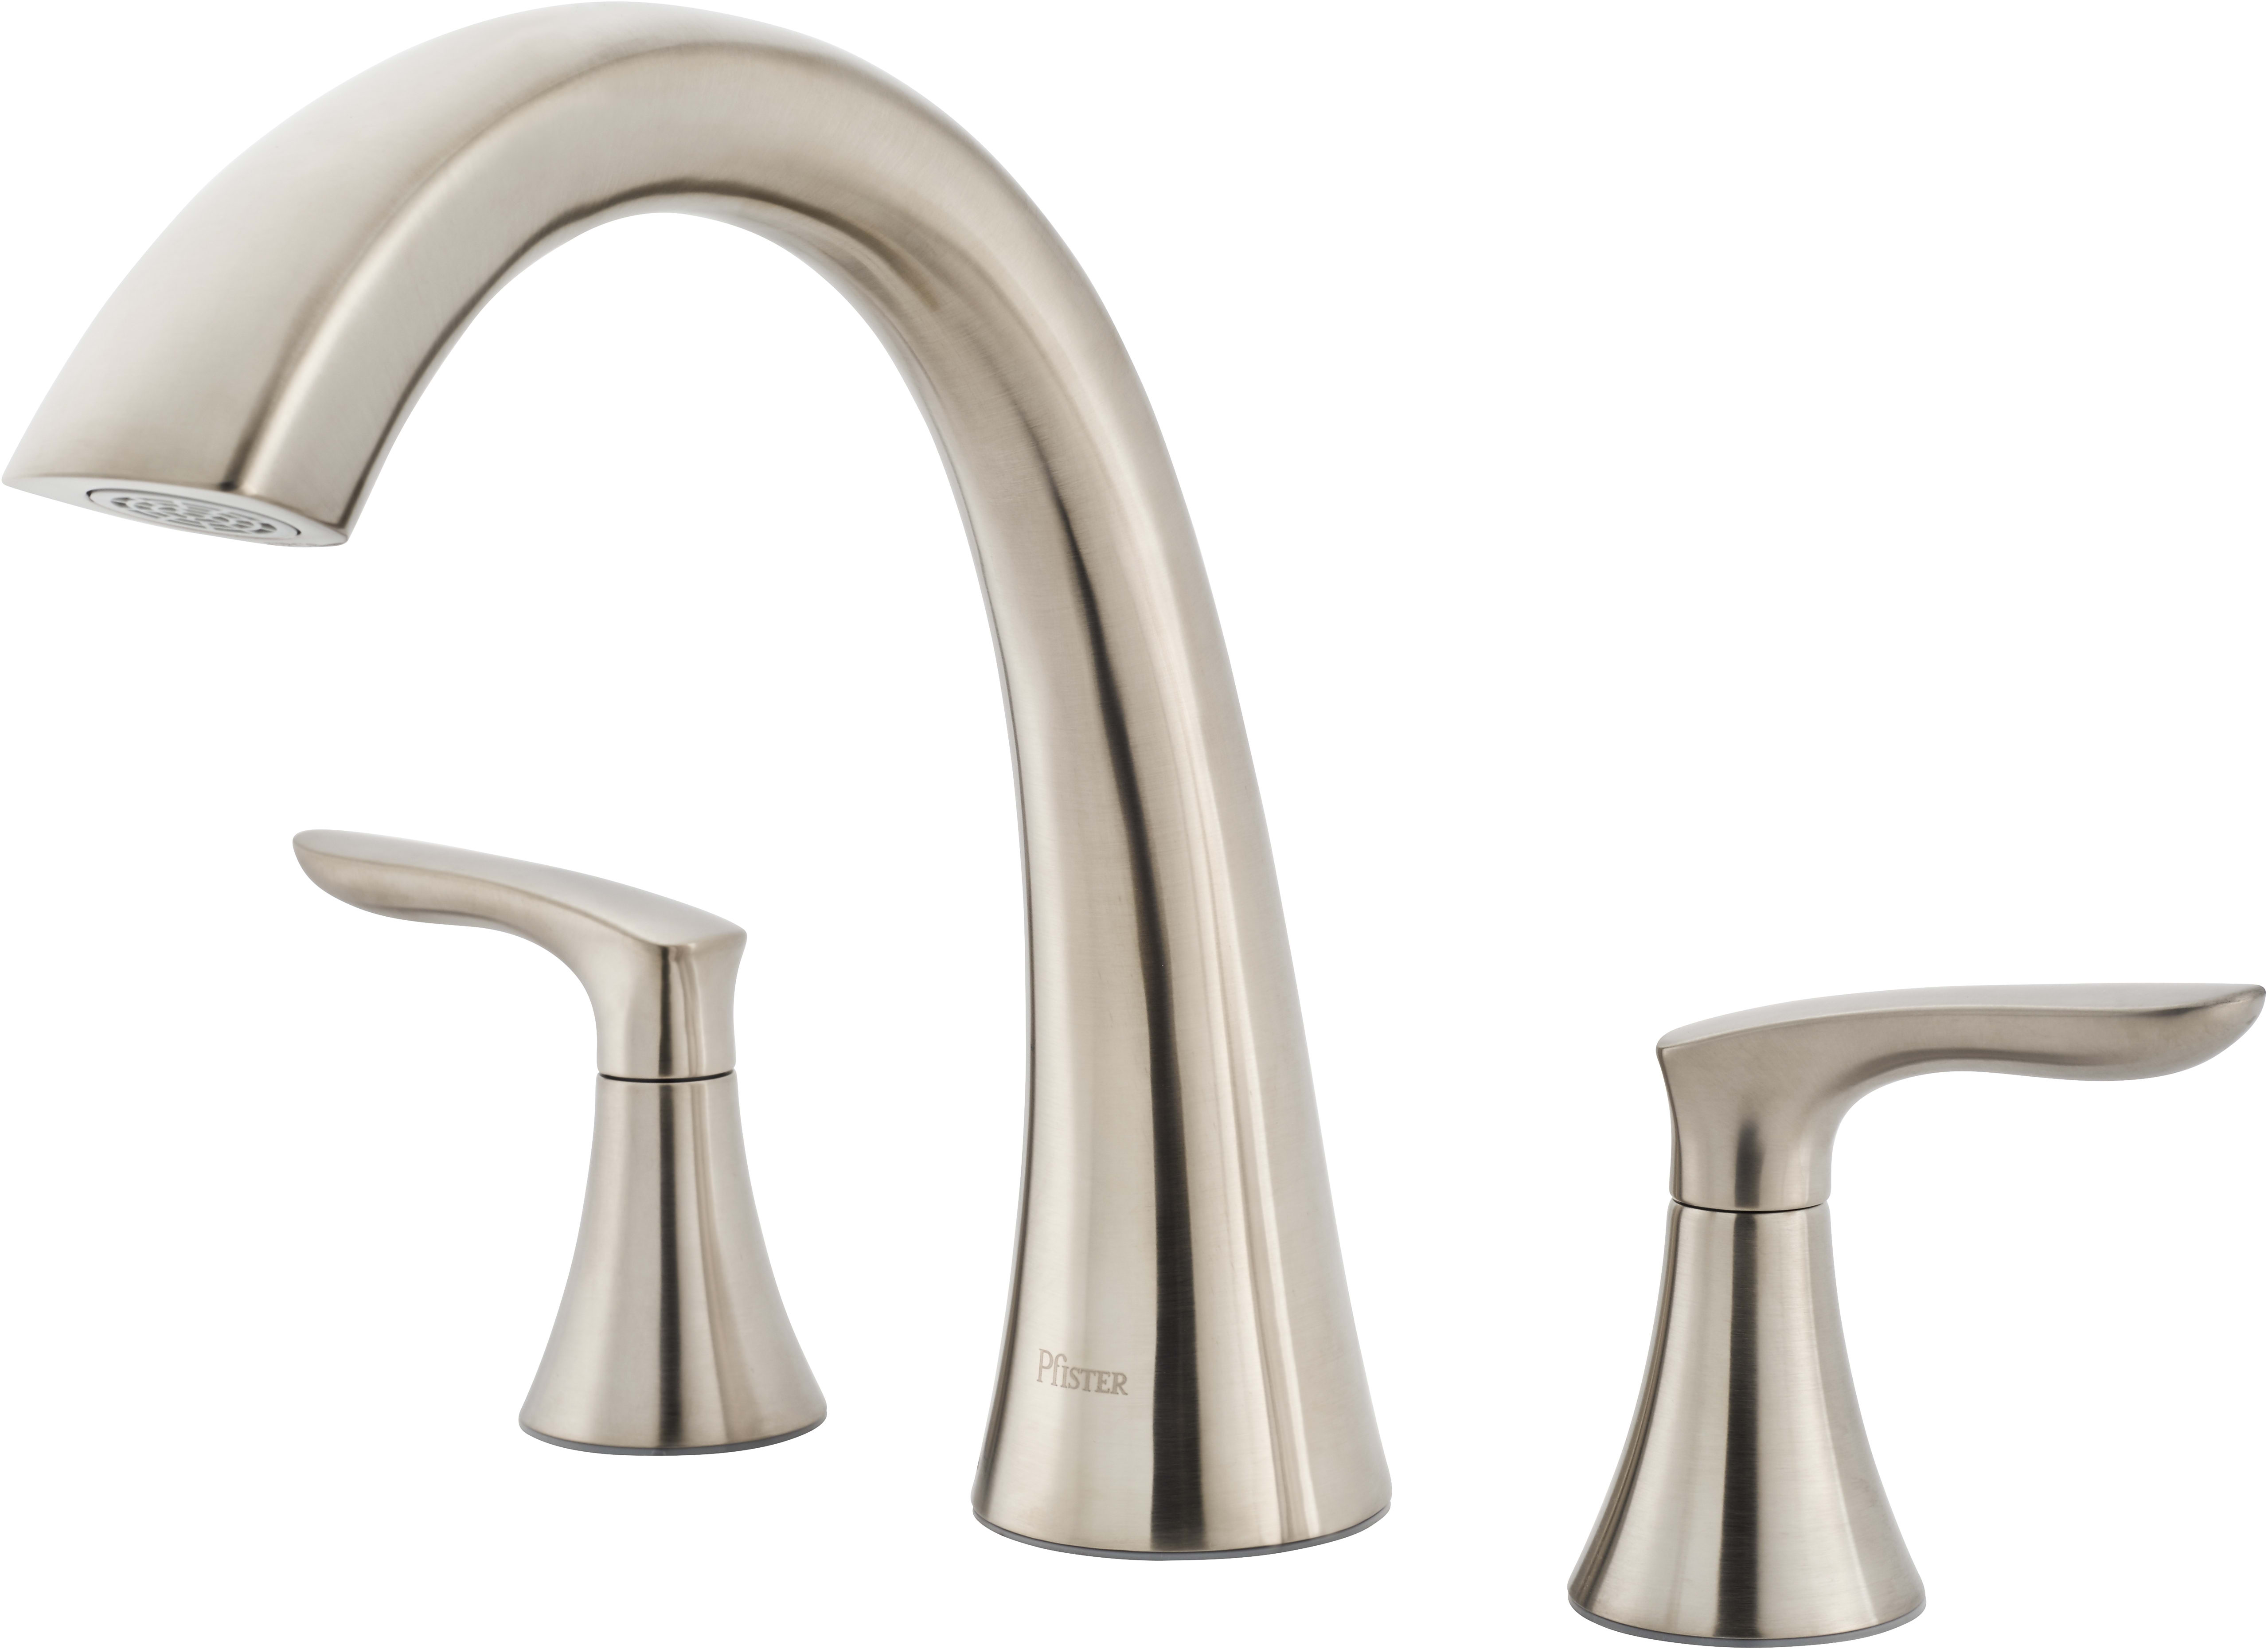 down kitchen in larger handle water pfirst faucet single dp pull pfister series model stainless view price tub steel efficient